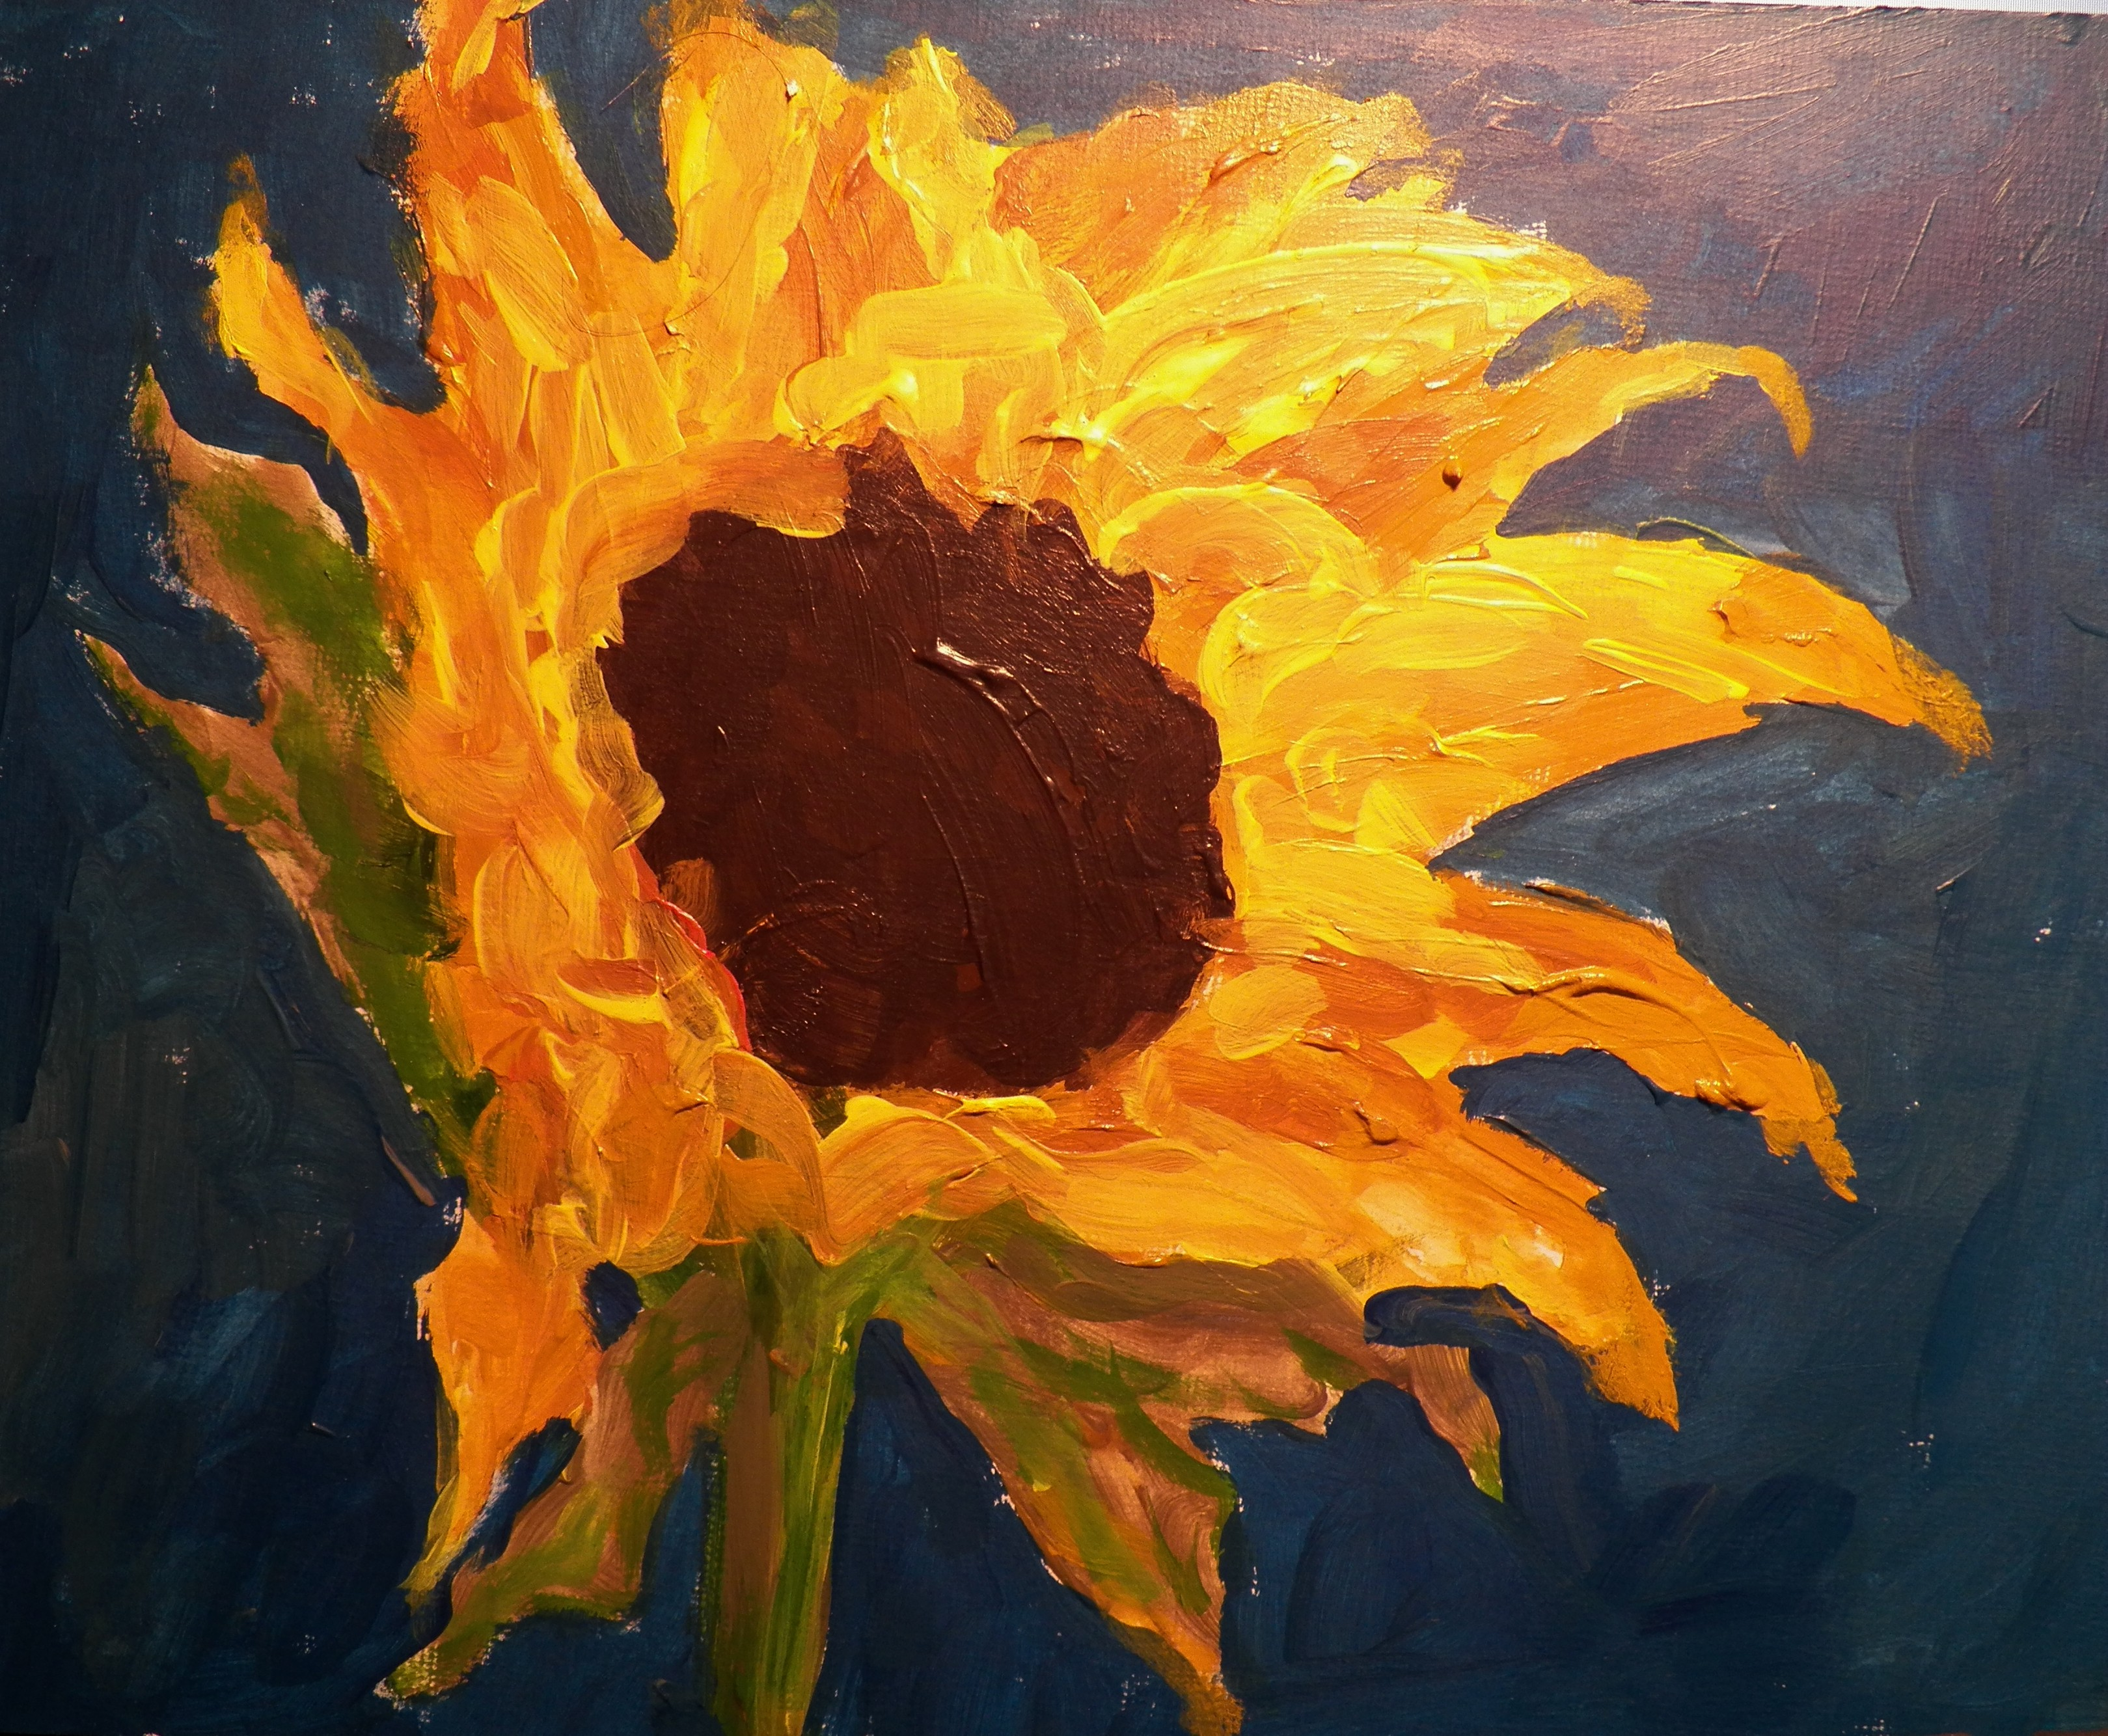 southerlands sunflower a place